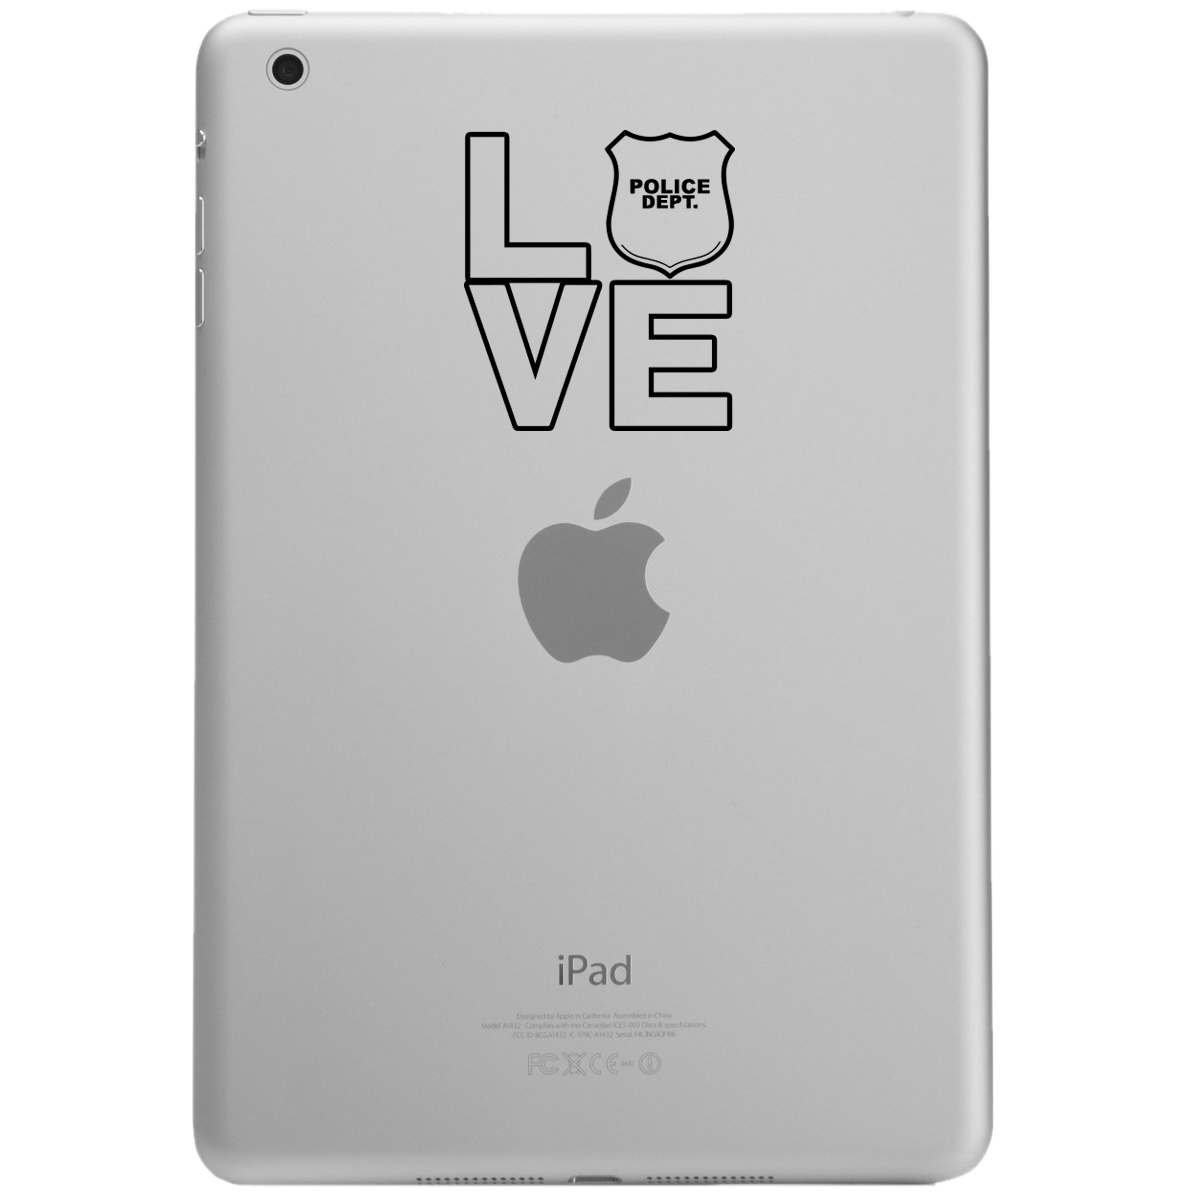 I Love the Police iPad Tablet Vinyl Sticker Decal